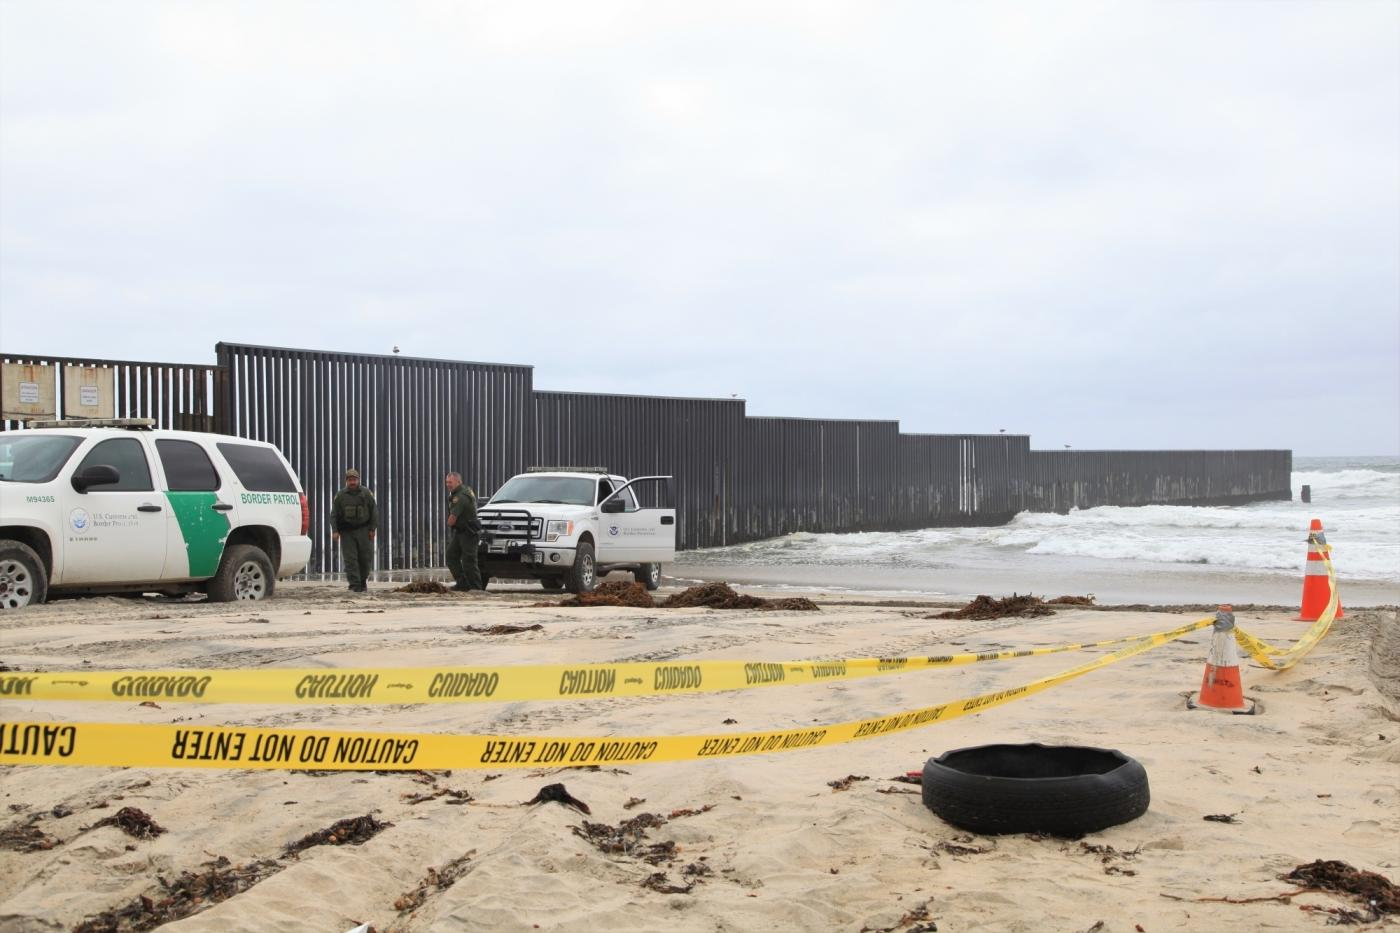 SAN DIEGO, May 1, 2018 (Xinhua) -- American policemen guard near the border wall between the U.S. and Mexico, in San Diego, the United States, April 30, 2018. Hundreds of Central American migrants arrived in Mexican border city Tijuana making a mass request for US asylum.(Xinhua/Huang Heng/IANS) by .